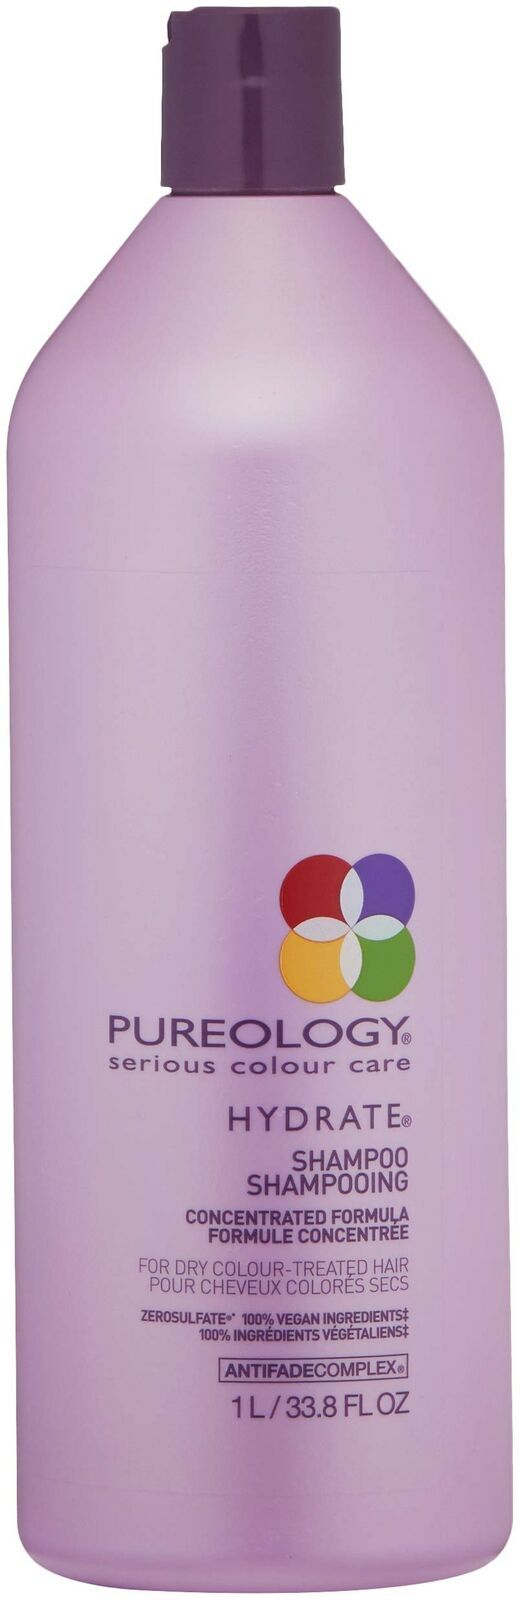 Pureology | Hydrate Moisturizing Shampoo | For Medium to Thick Dry, Color Tre... - $91.58